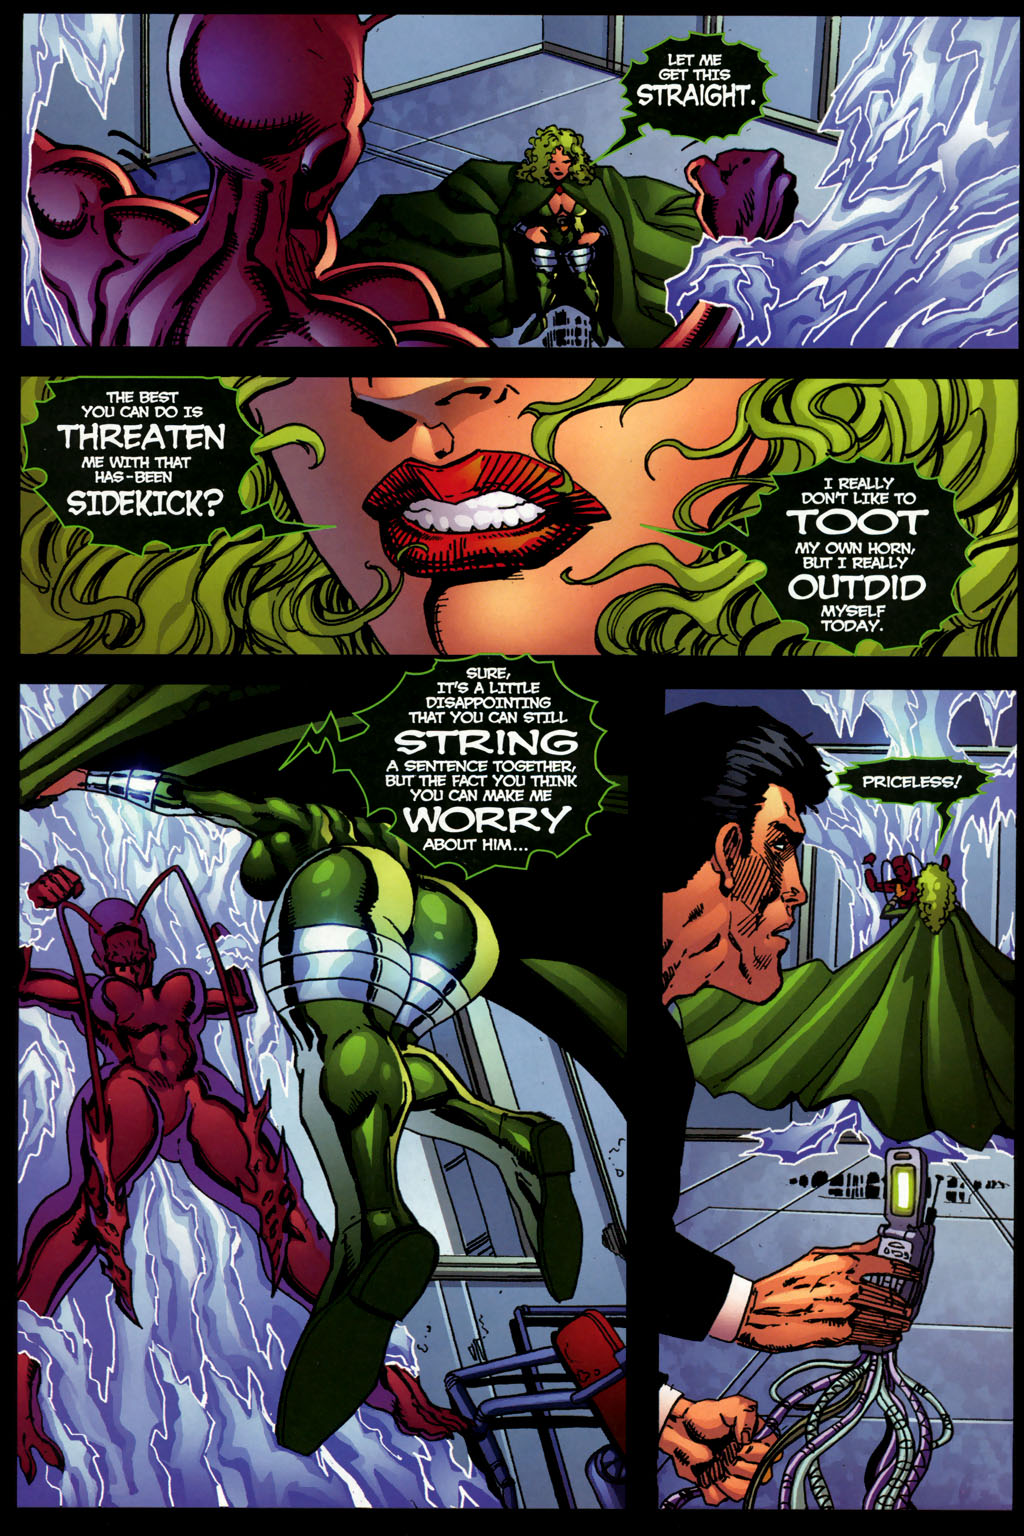 Read online Ant comic -  Issue #8 - 8